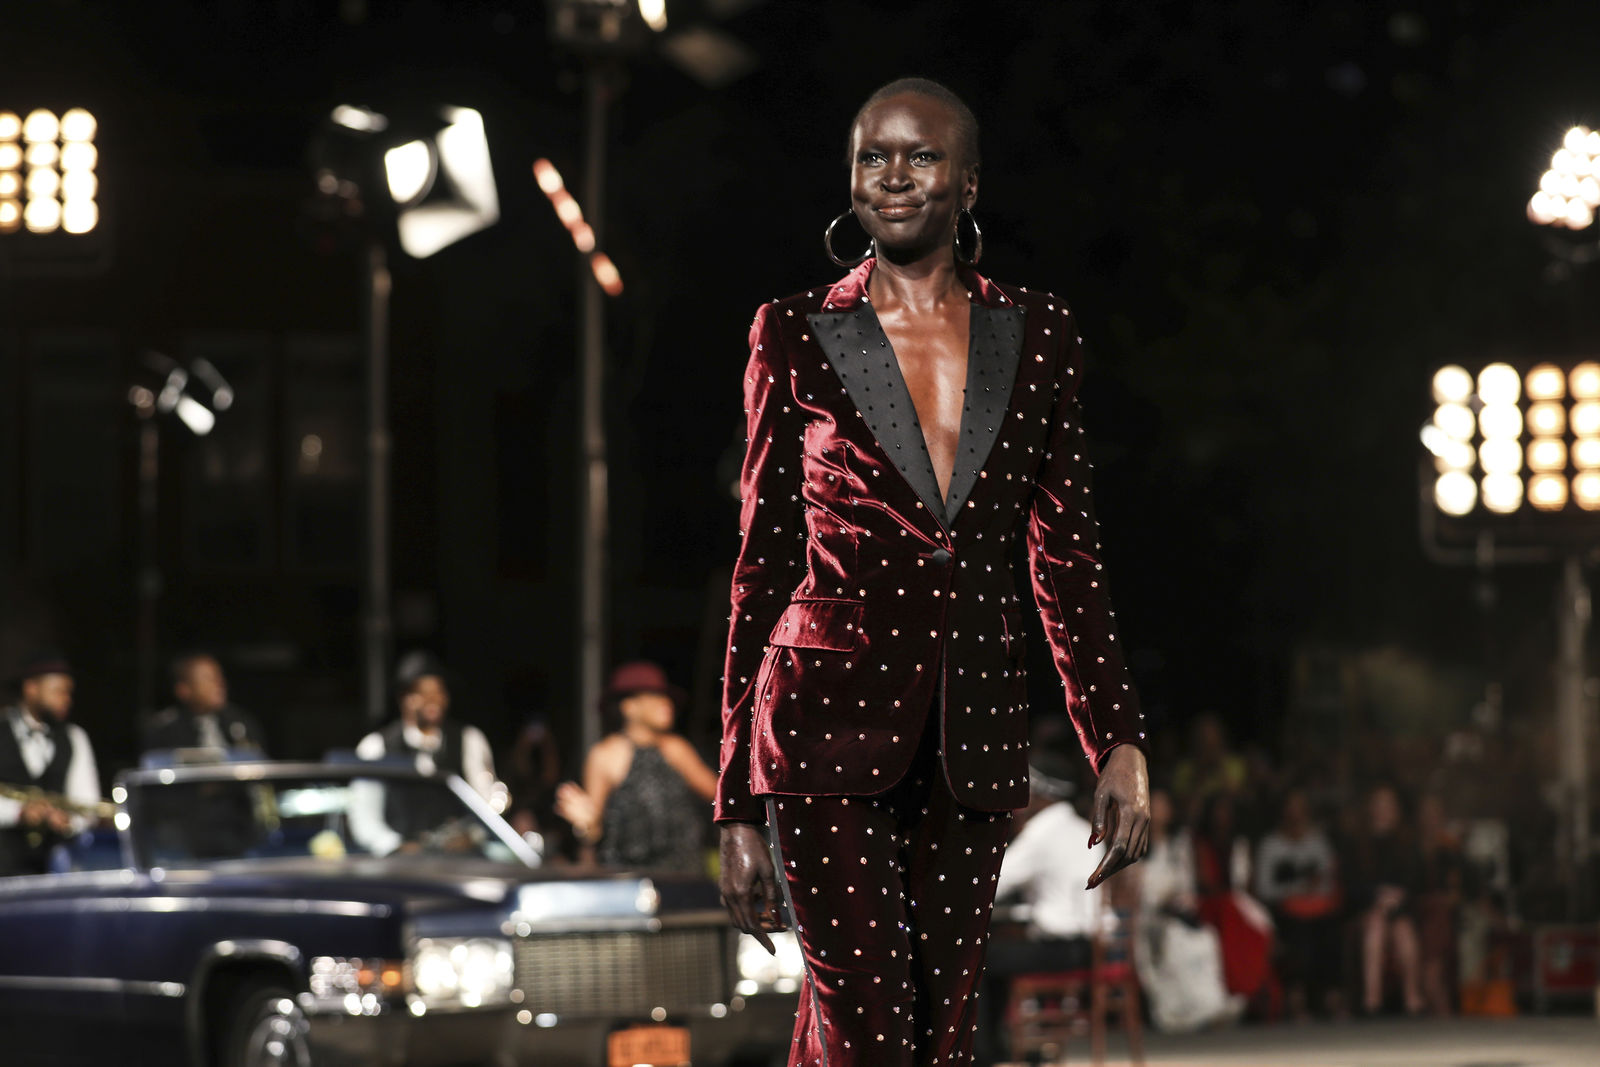 The Tommy Hilfiger collection is modeled during Fashion Week in New York, Sunday, Sept. 8, 2019. (AP Photo/Jeenah Moon)